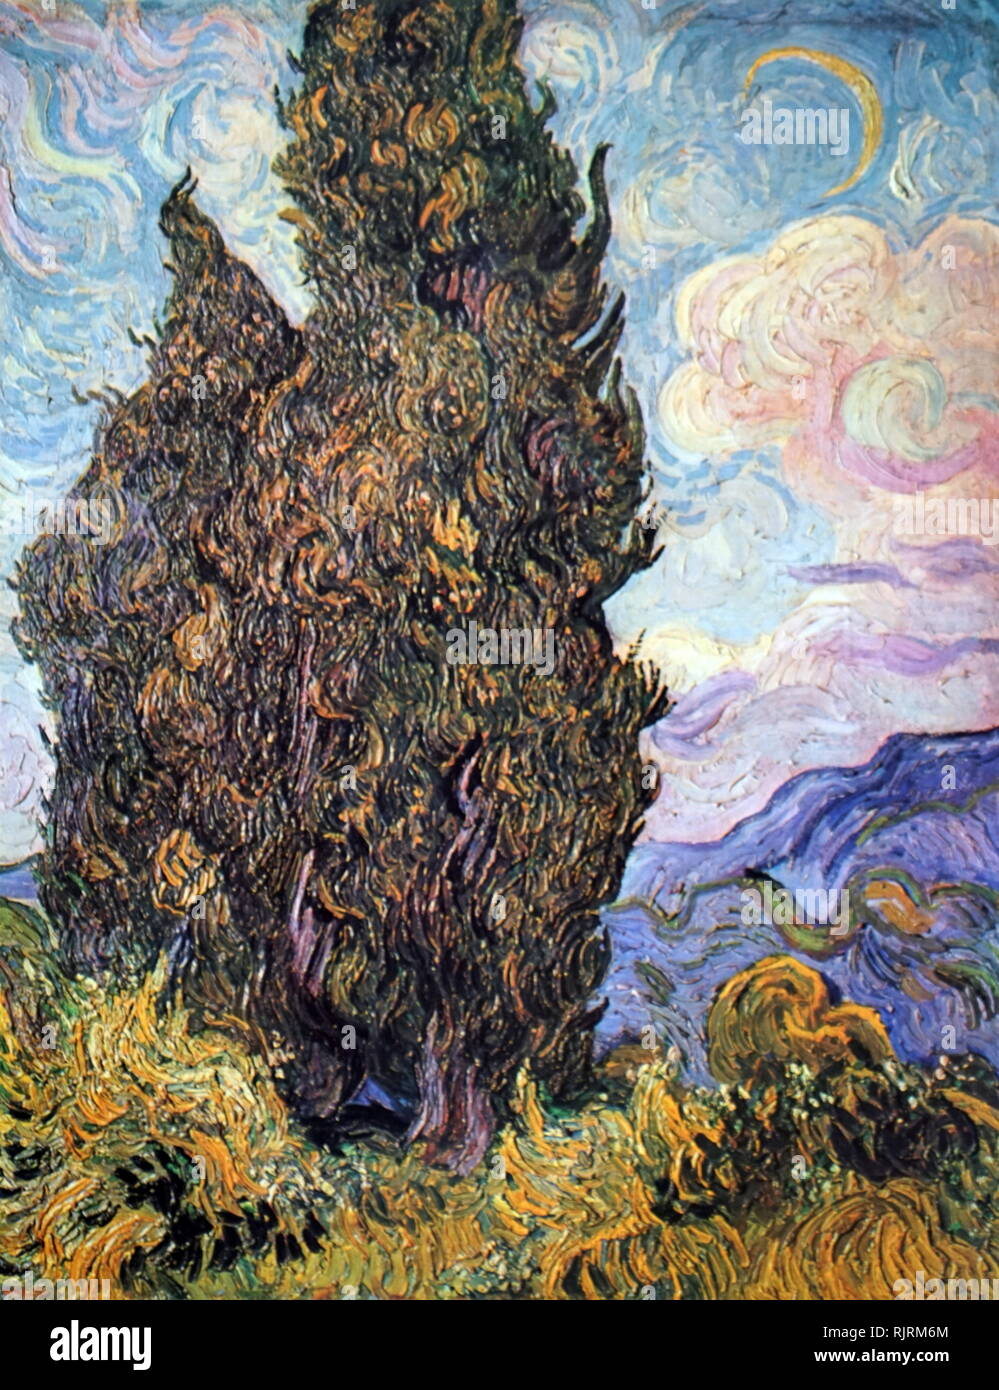 Cypresses; 1889, Oil on canvas, by the Dutch artist Vincent van Gogh (1853-1890). Painted shortly after Van Gogh began his yearlong stay at the asylum in Saint-Remy) - Stock Image